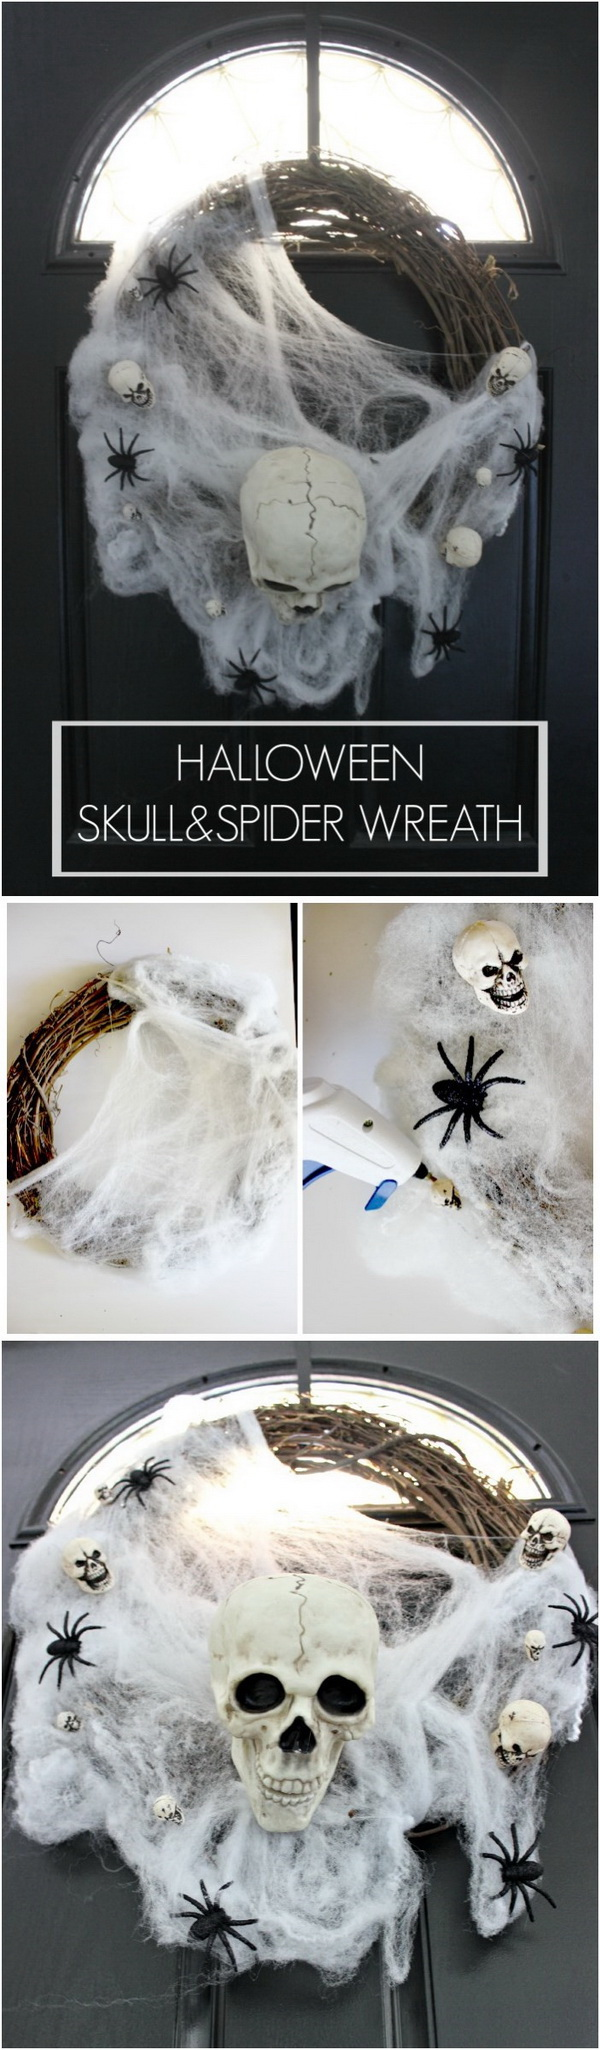 Halloween Skull & Spider Wreath. Another wickedly unique addition to your family's holiday decorations. It was such a fun and easy project. Even your little ones can get involved in.